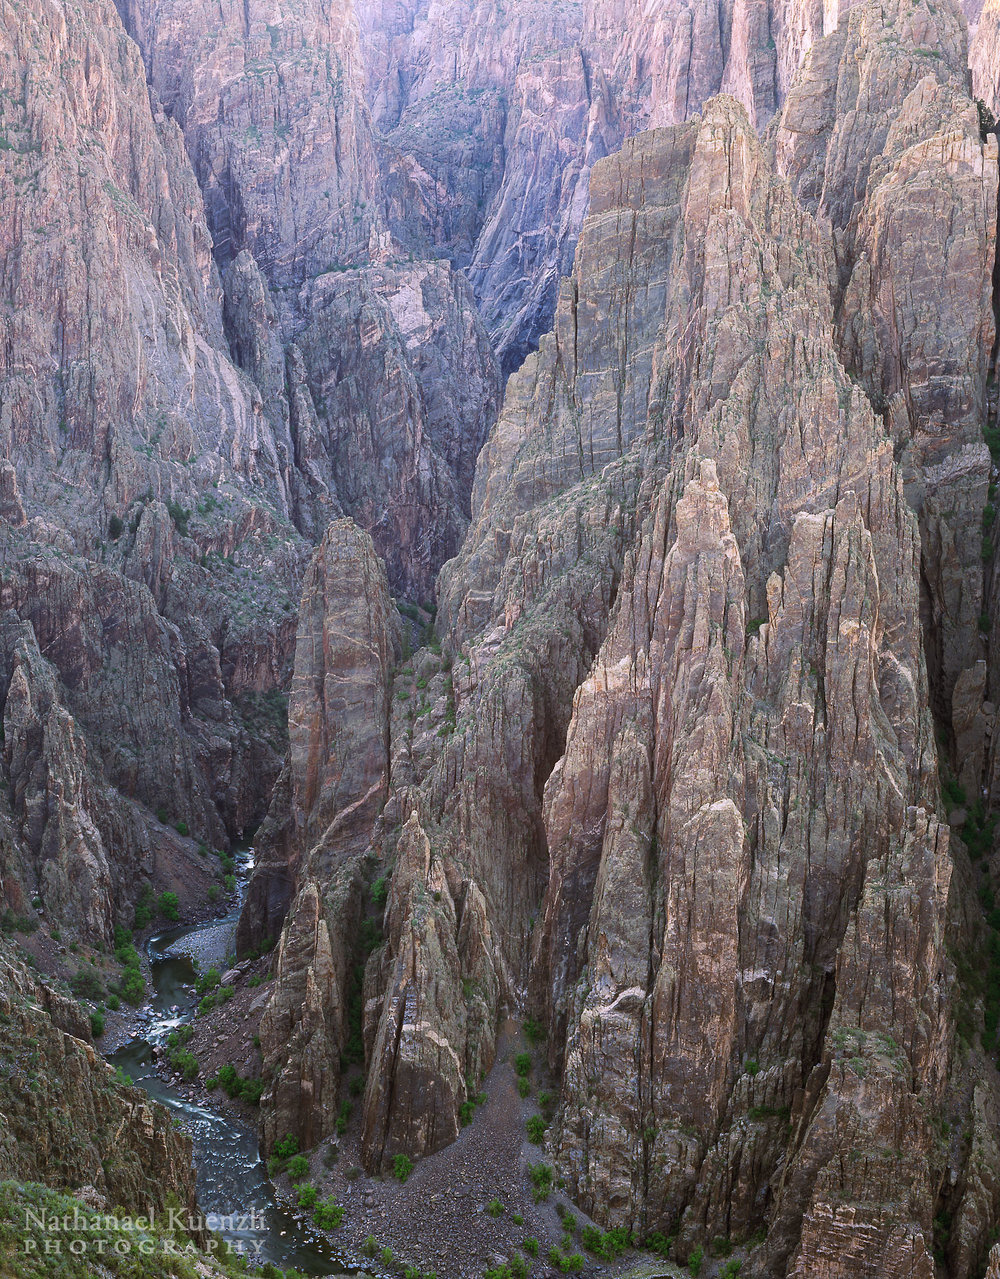 Black Canyon of the Gunnison National Park, Colorado, May 2004